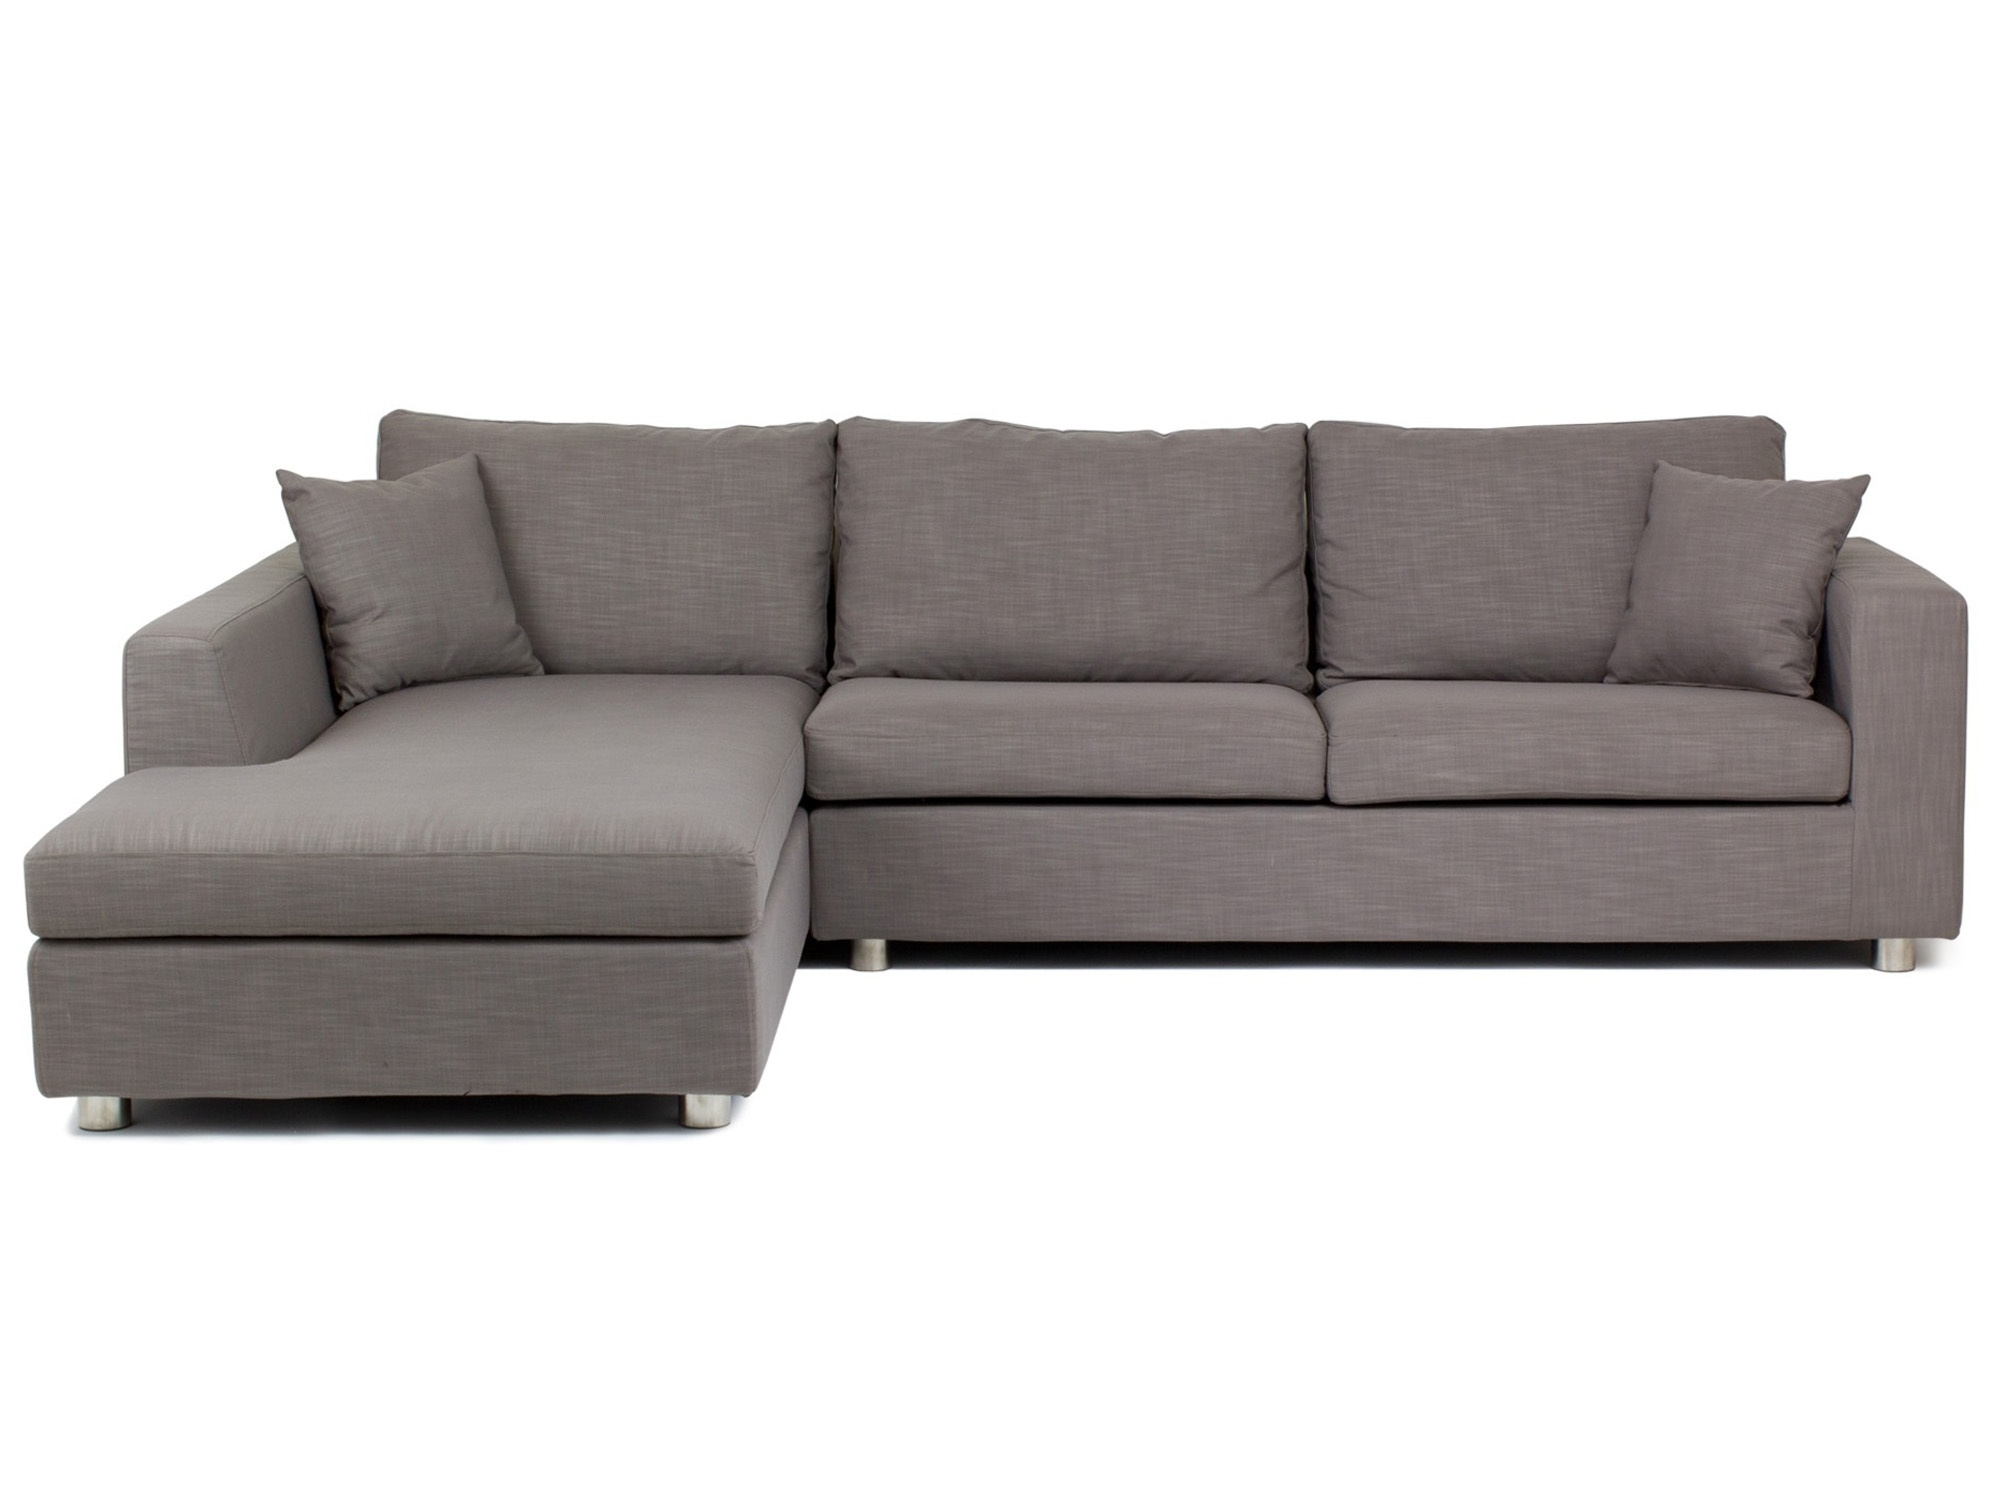 Popular Sofa Beds With Chaise Within Chesterfield Chair : Small Spaces Small Chaise Sofa Bed Chaise (View 14 of 15)